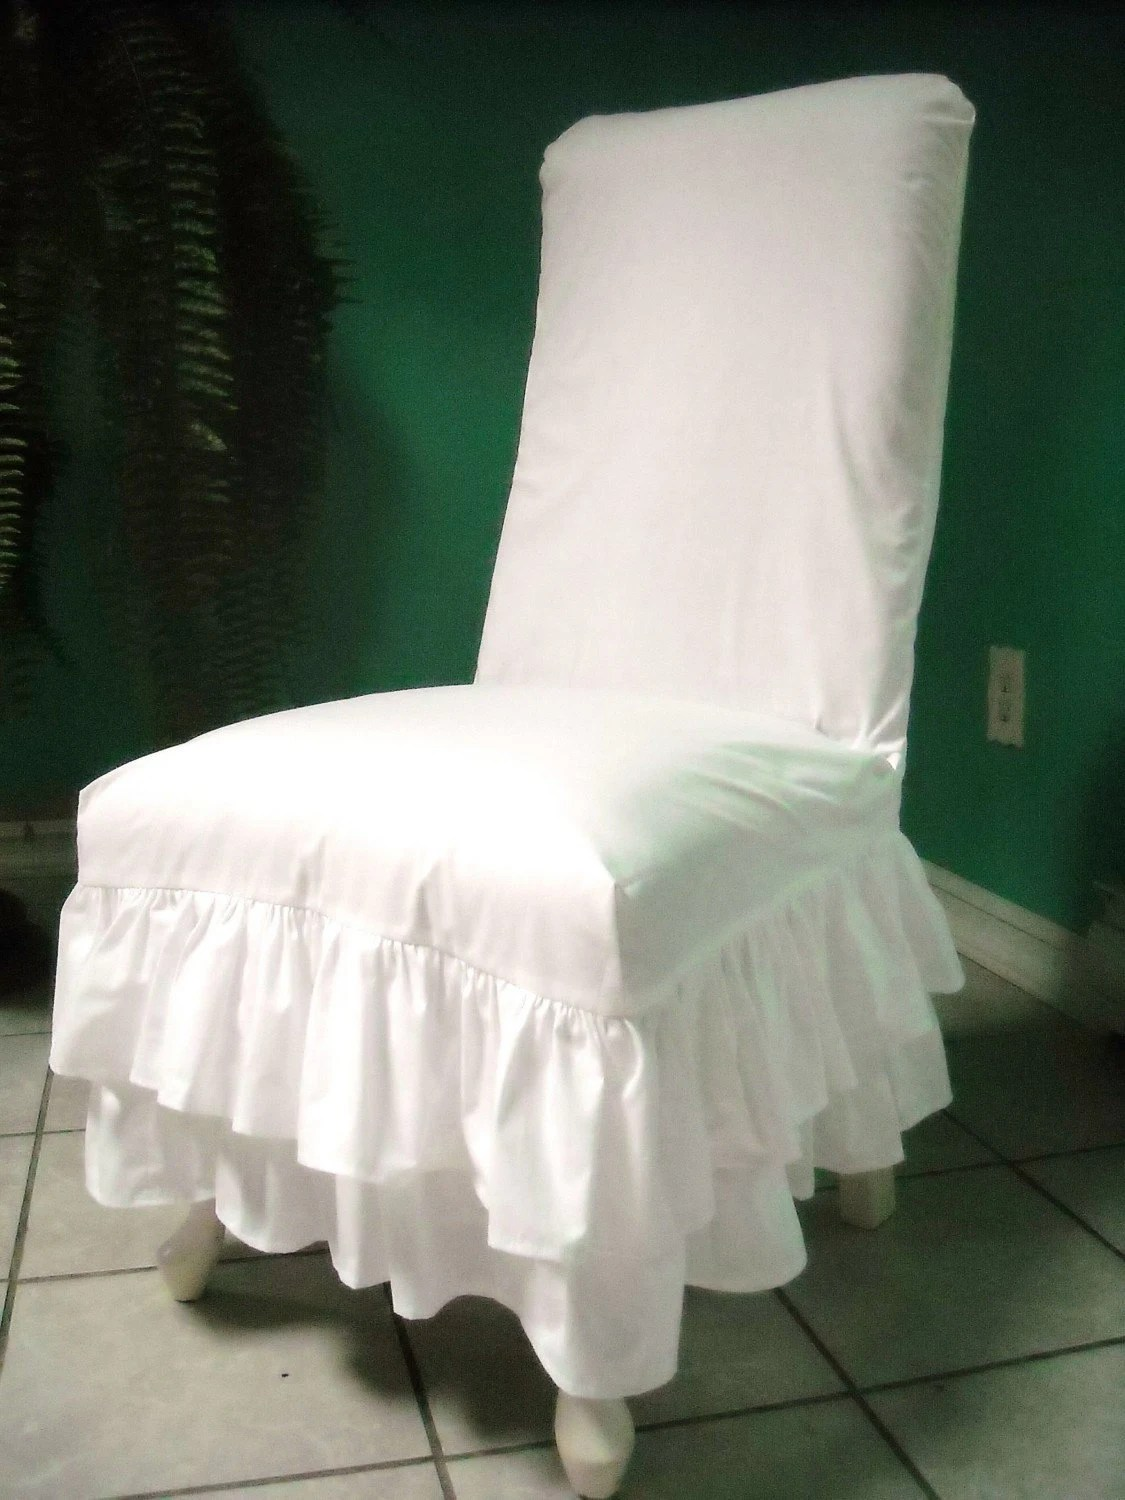 Slip Cover For Chair White Ruffled Chair Slipcover By Paulaanderika On Etsy